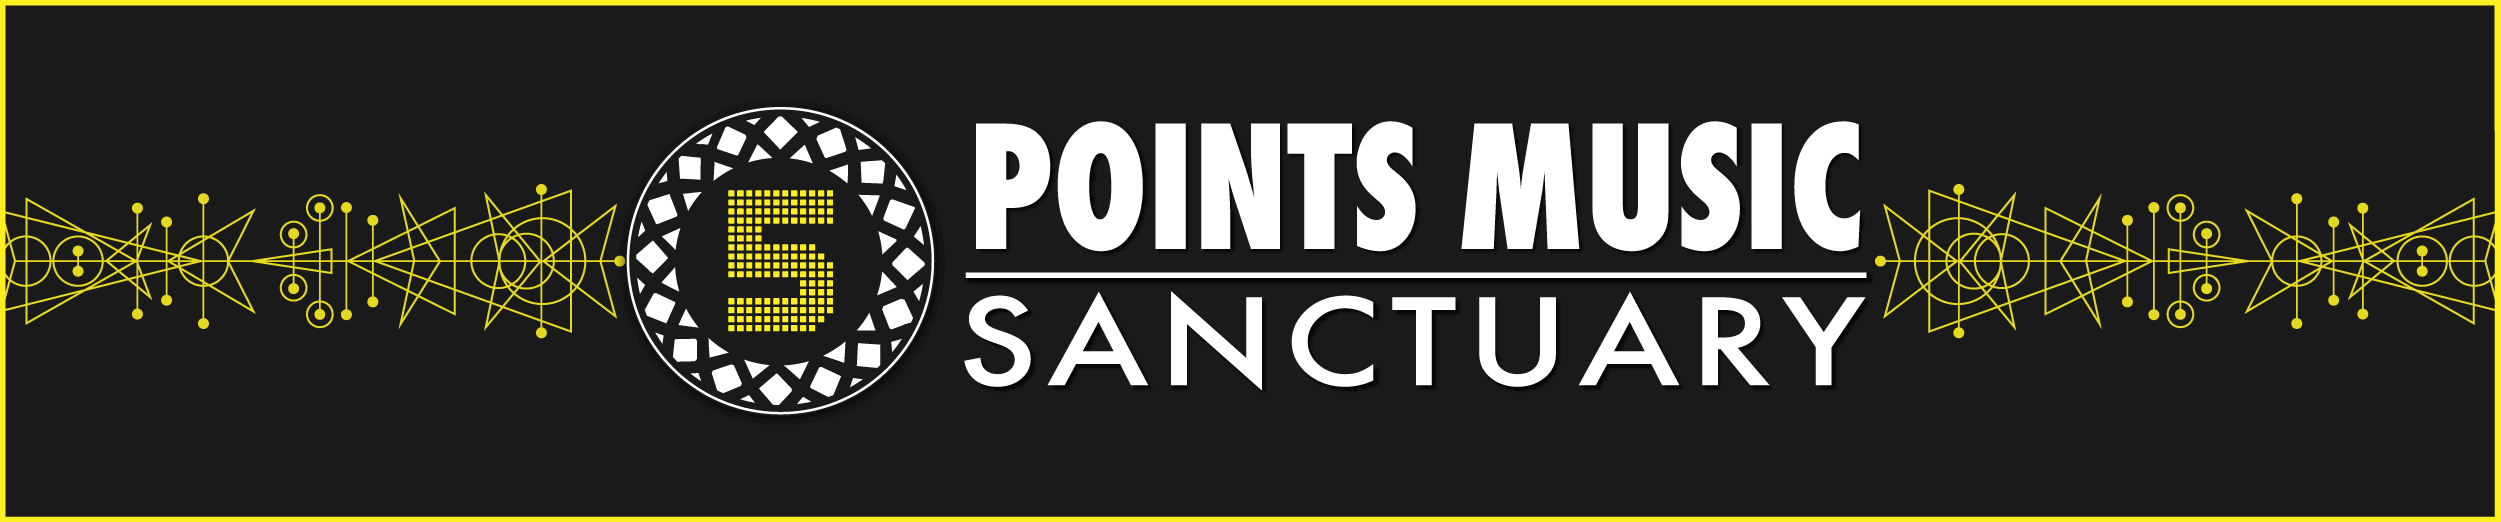 5 POINTS MUSIC SANCTUARY